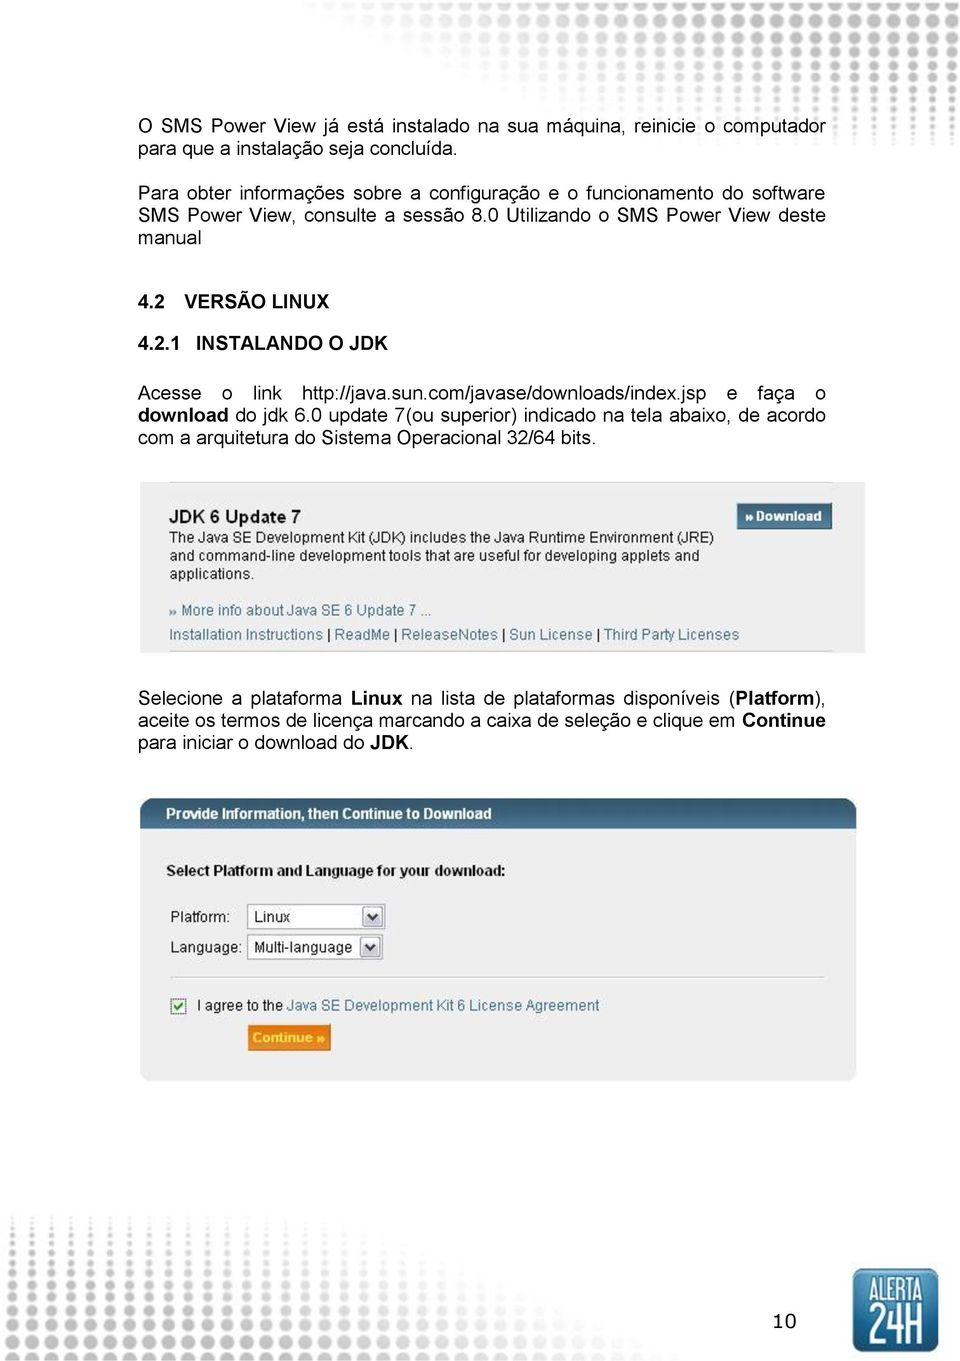 2.1 INSTALANDO O JDK Acesse o link http://java.sun.com/javase/downloads/index.jsp e faça o download do jdk 6.